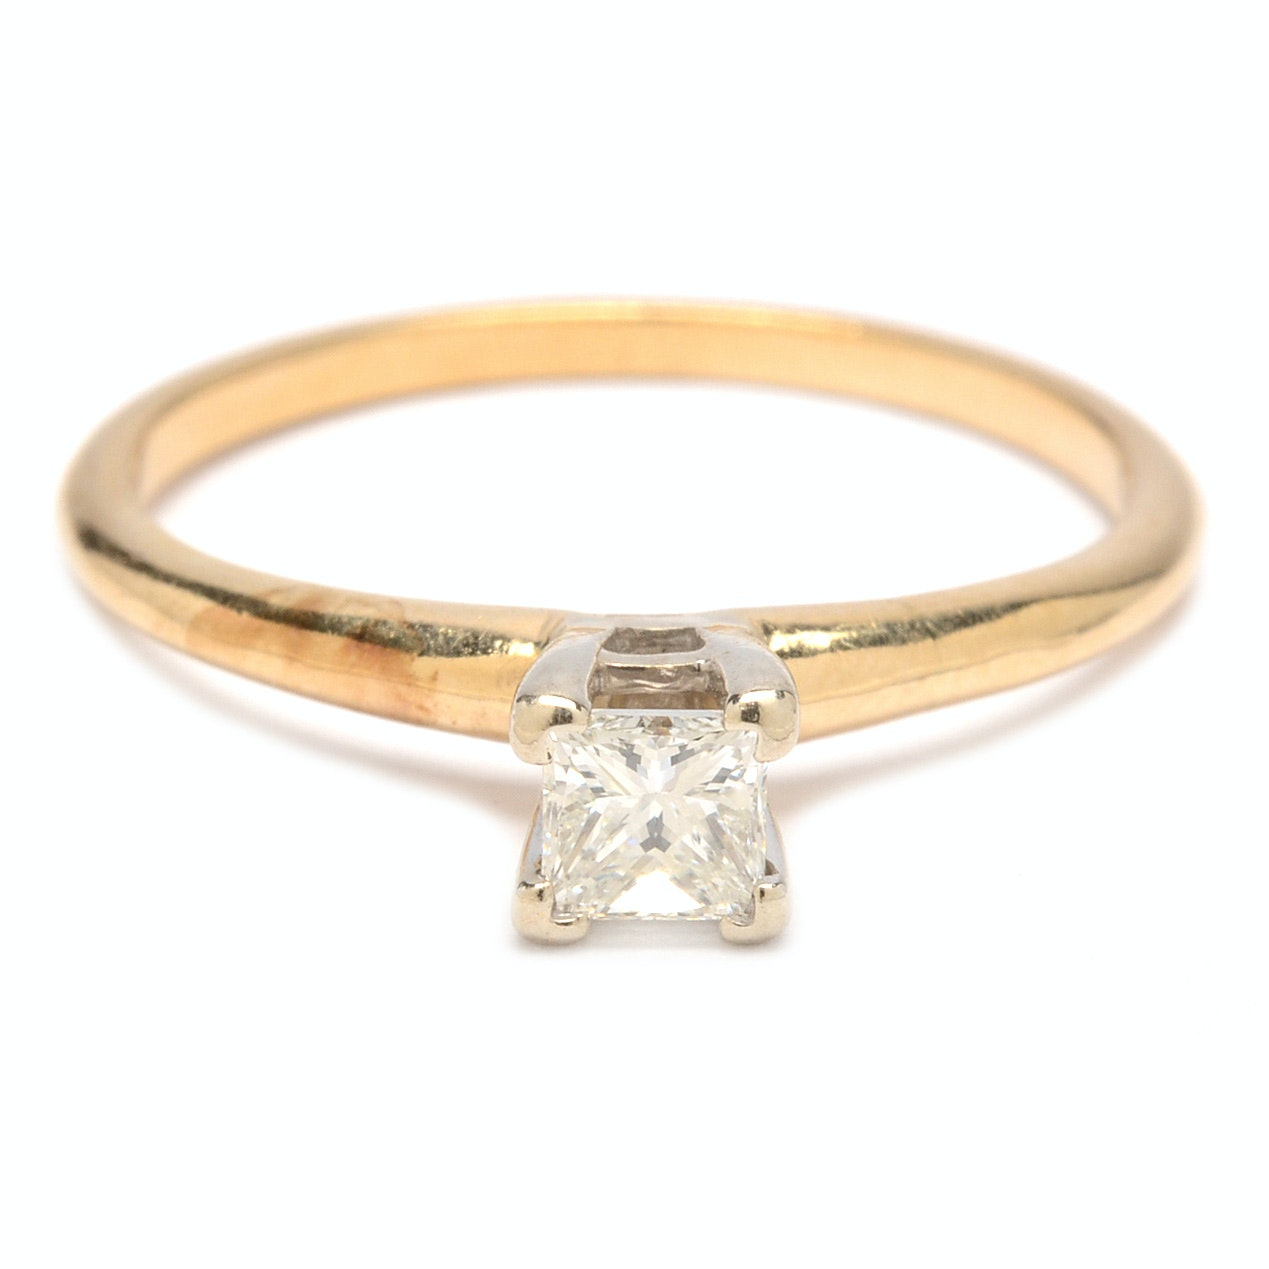 14K Yellow Gold Princess Cut Diamond Solitaire Ring